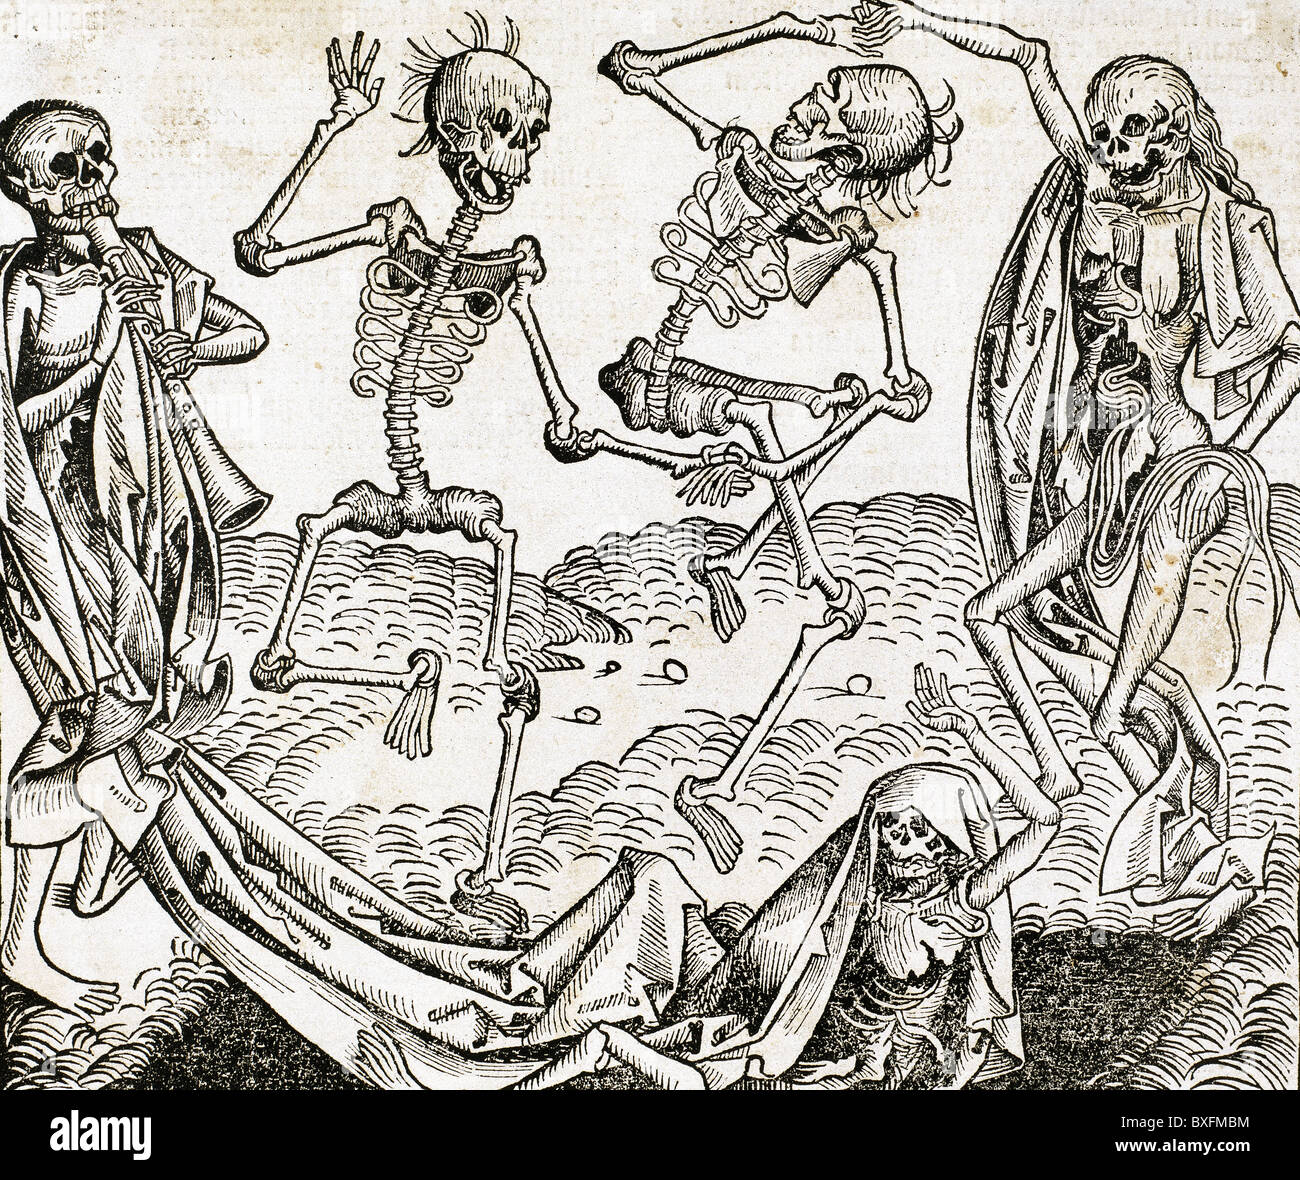 The Dance of Death (1493) by Michael Wolgemut, from the Liber chronicarum by Hartmann Schedel. Engraving. - Stock Image